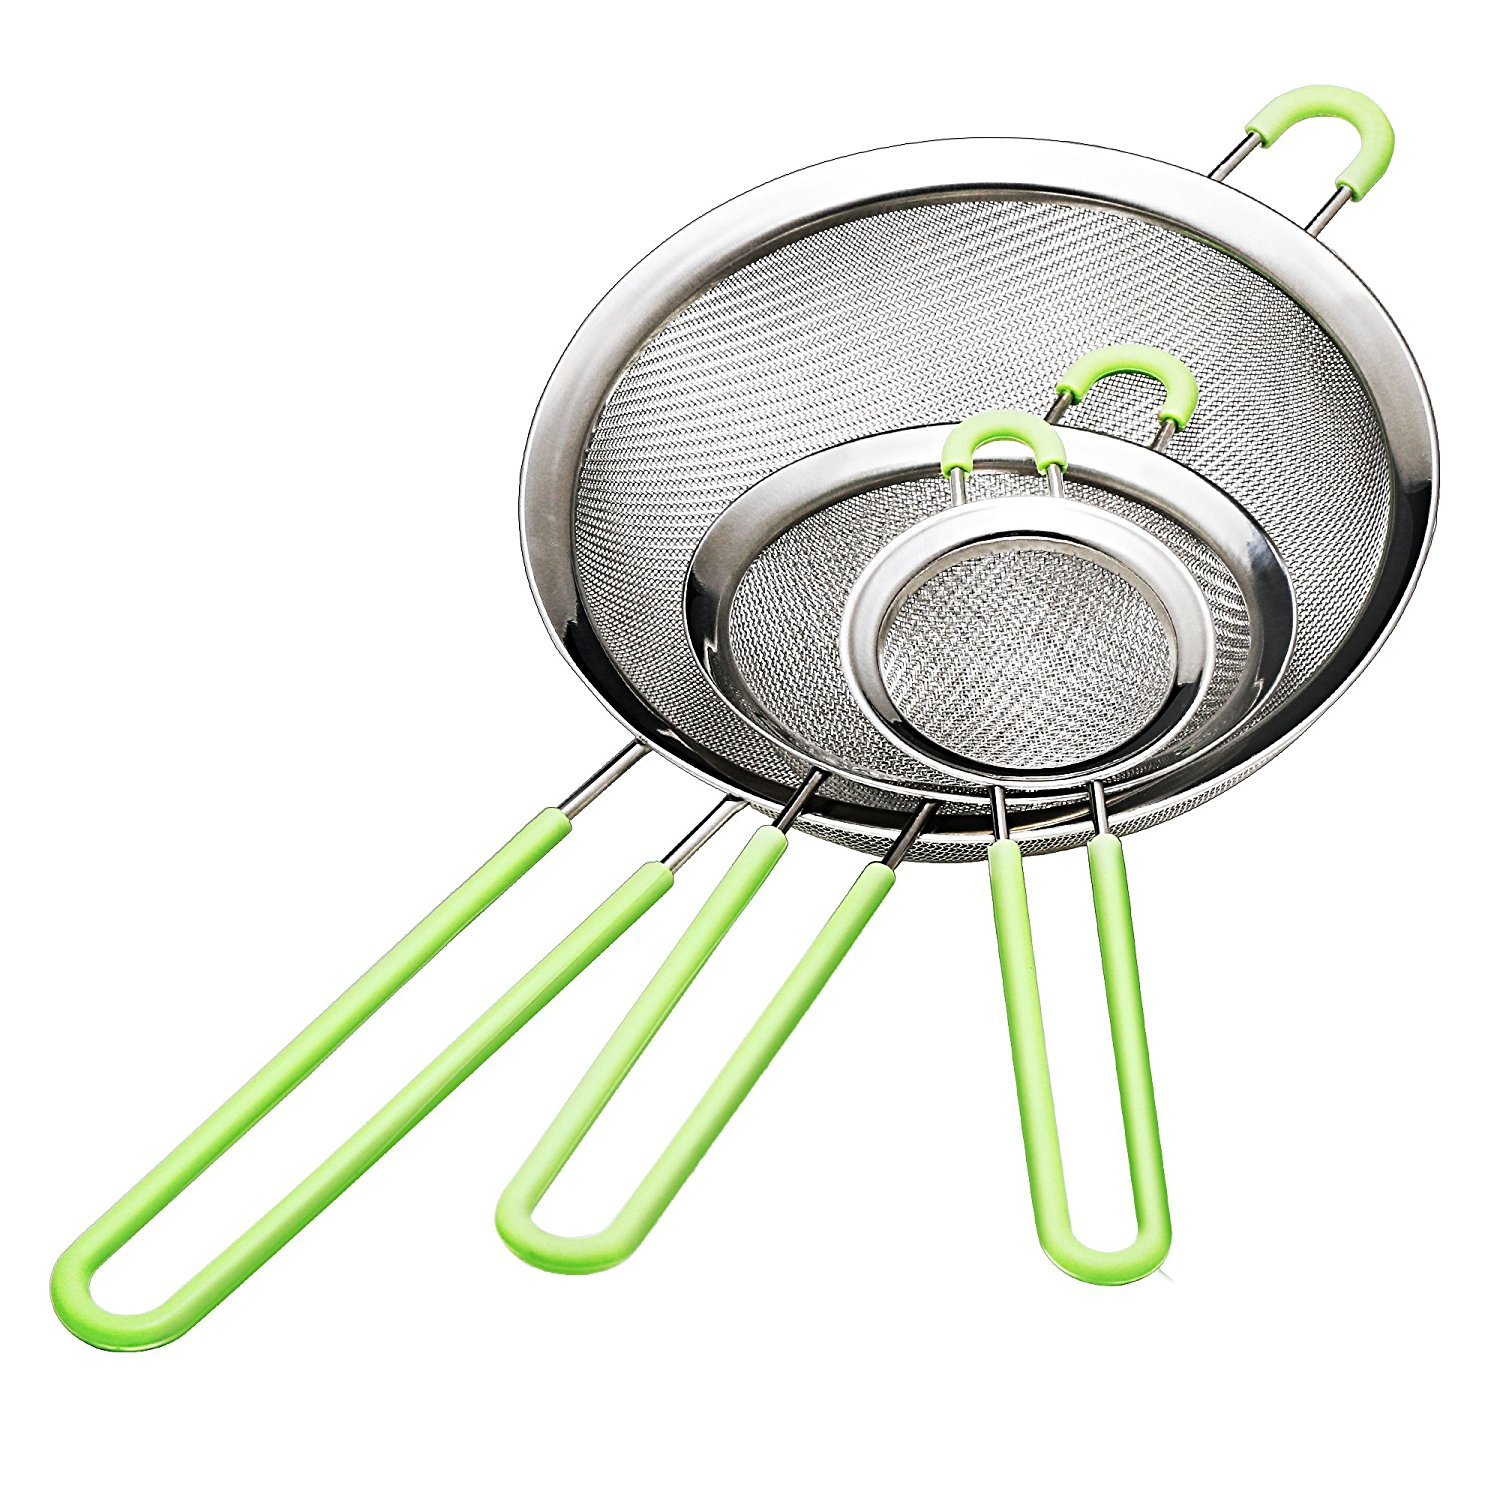 IPOW Grease Strainer Fine Mesh Colander with Handle Cooking Oil Strainers and Colanders Set of 3 Stainless Steel Juice Sieve Strainer Mesh Food Spider Ladle Flour Sifter Skimmer, Silver